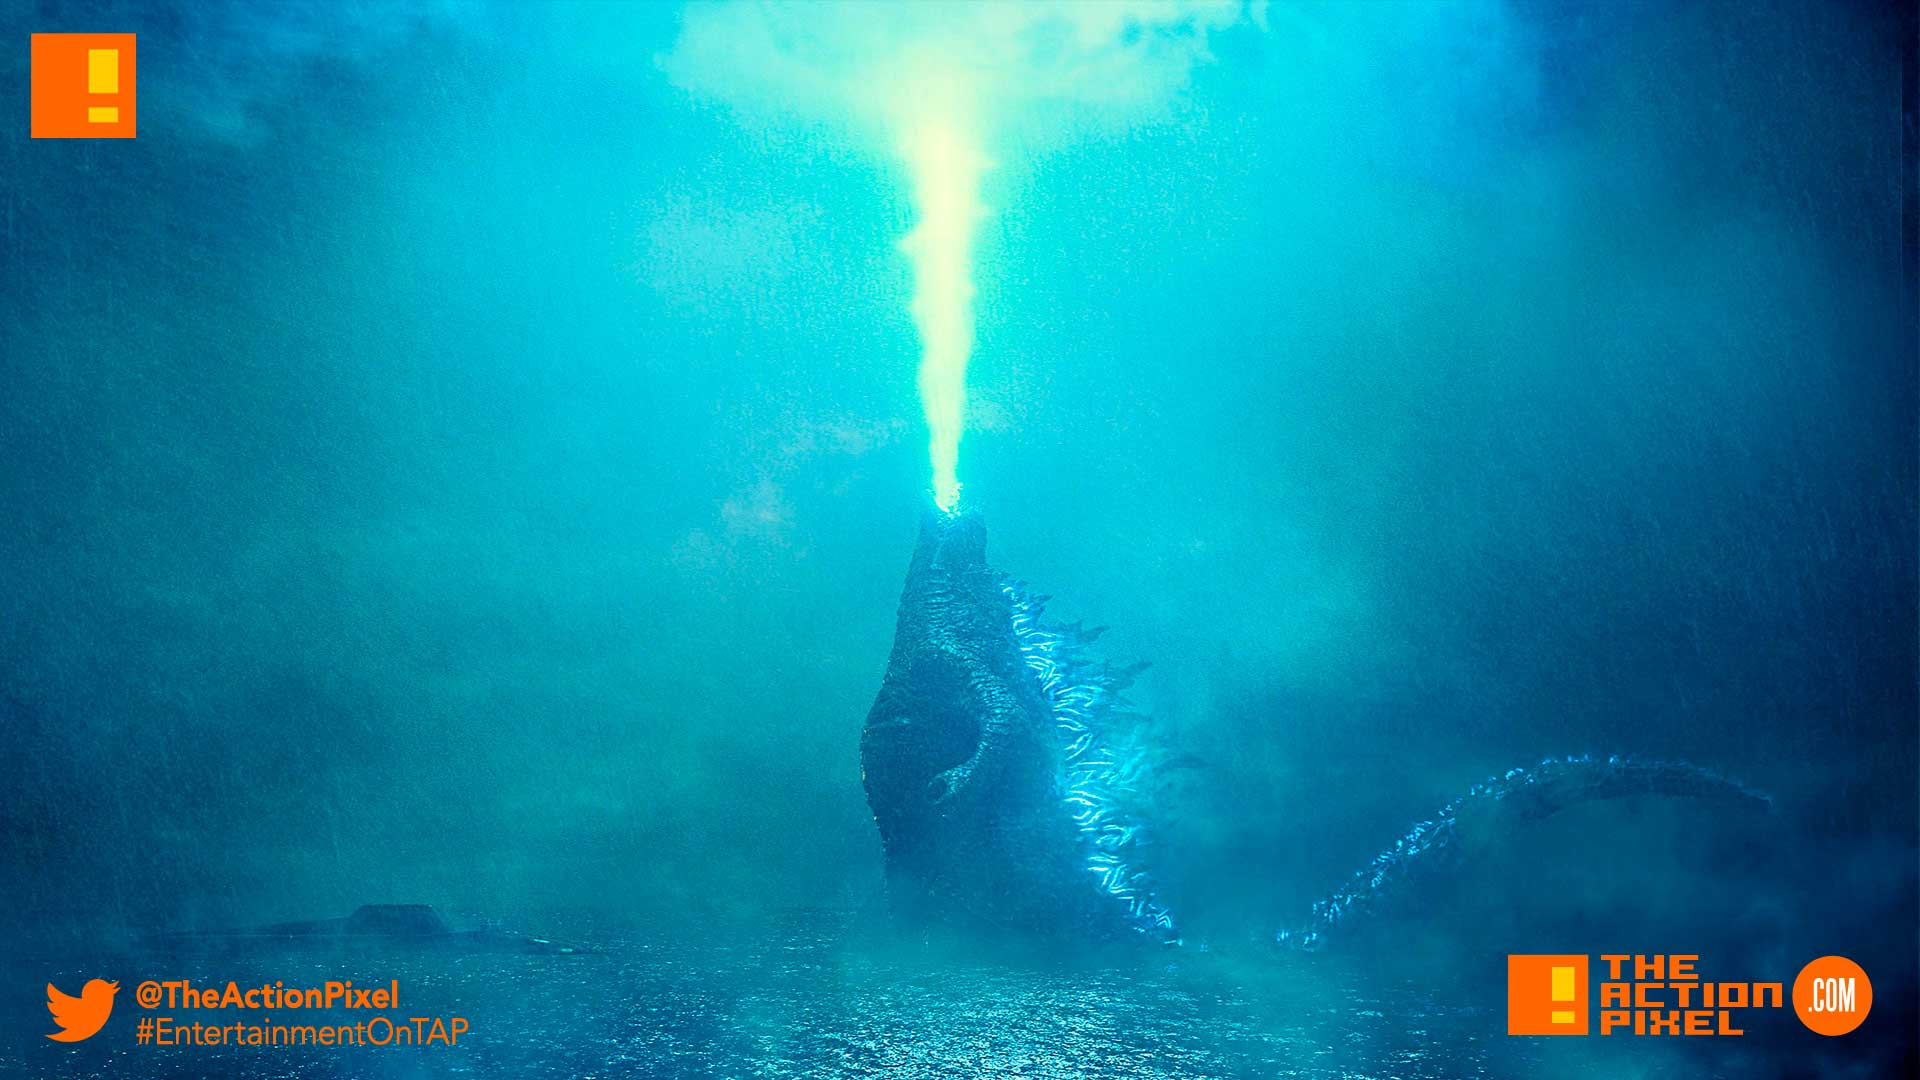 godzilla: king of the monsters, godzilla, millie bobby brown, the action pixel, entertainment on tap, atomic breath,